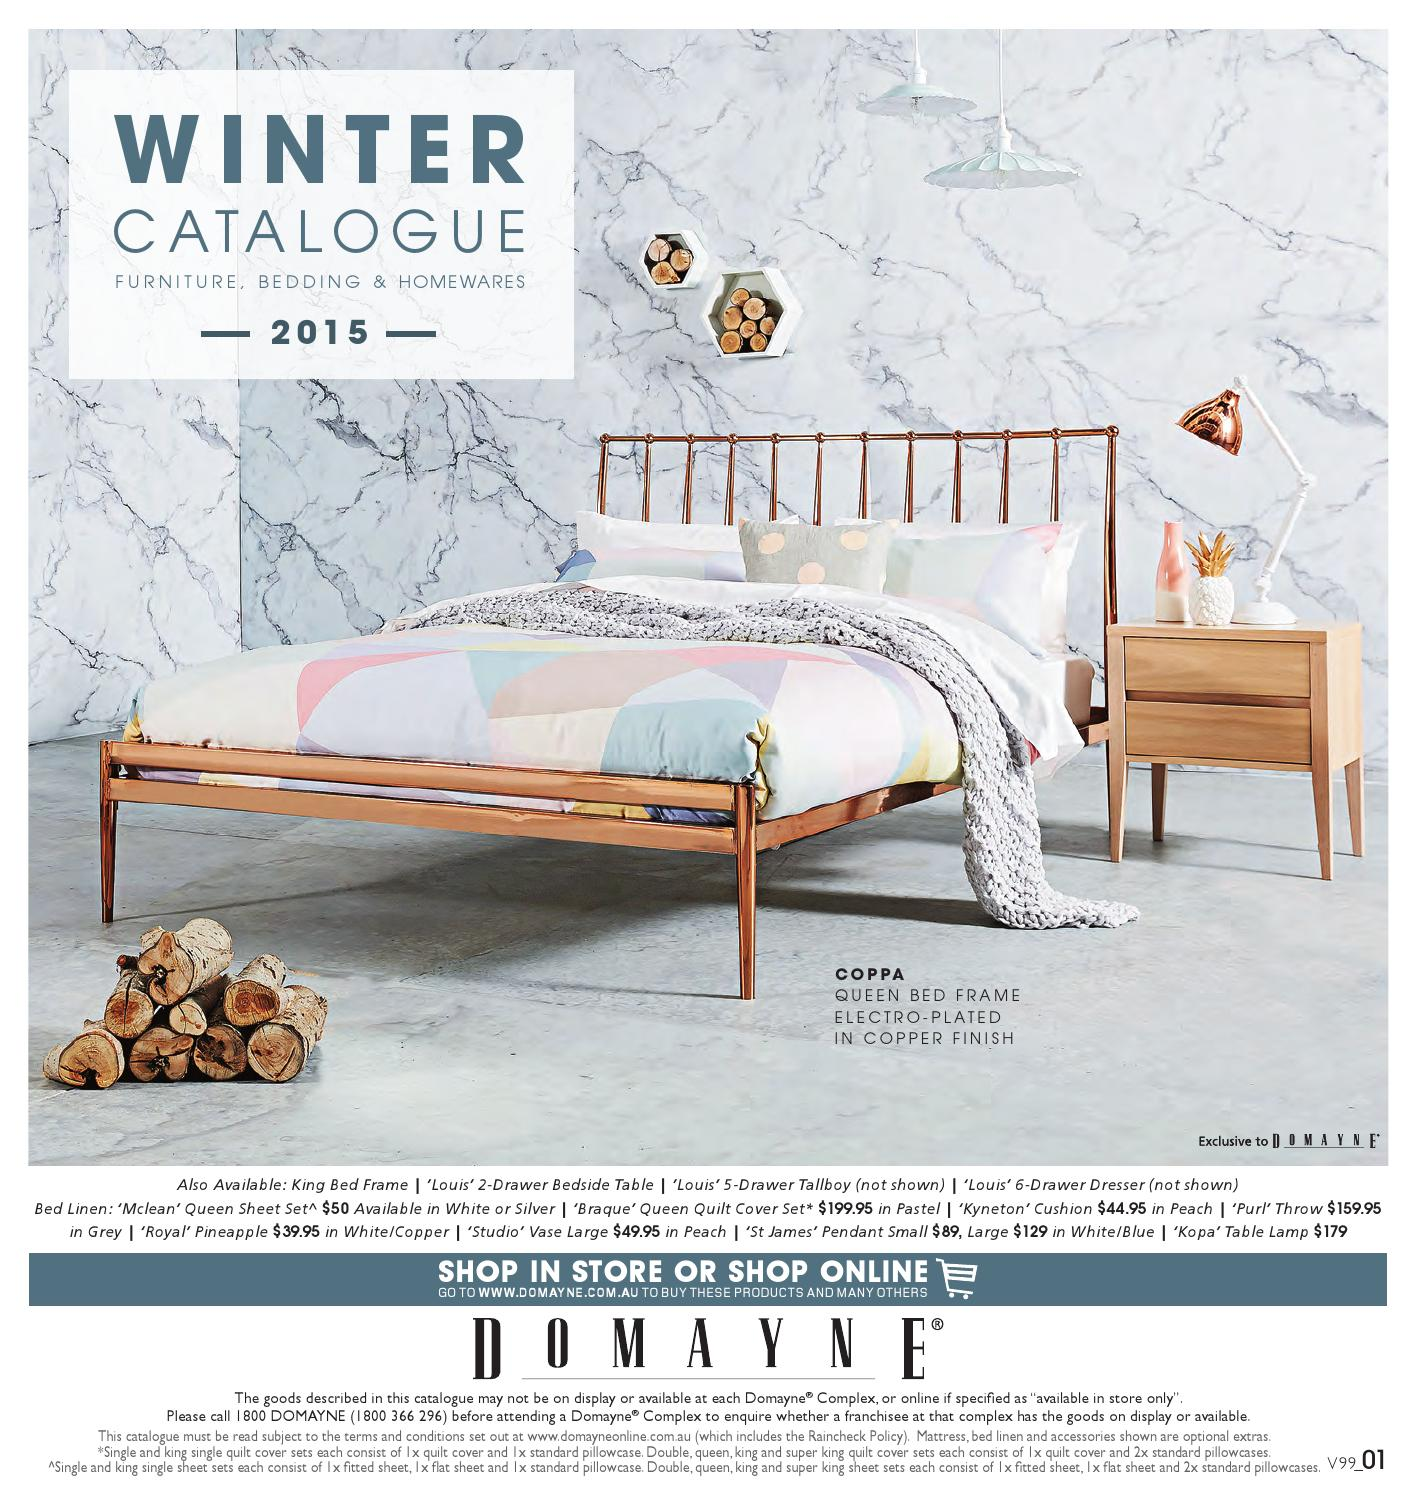 Domayne Beds Catalogue Winter Catalogue Furniture Bedding And Homewares 2015 By